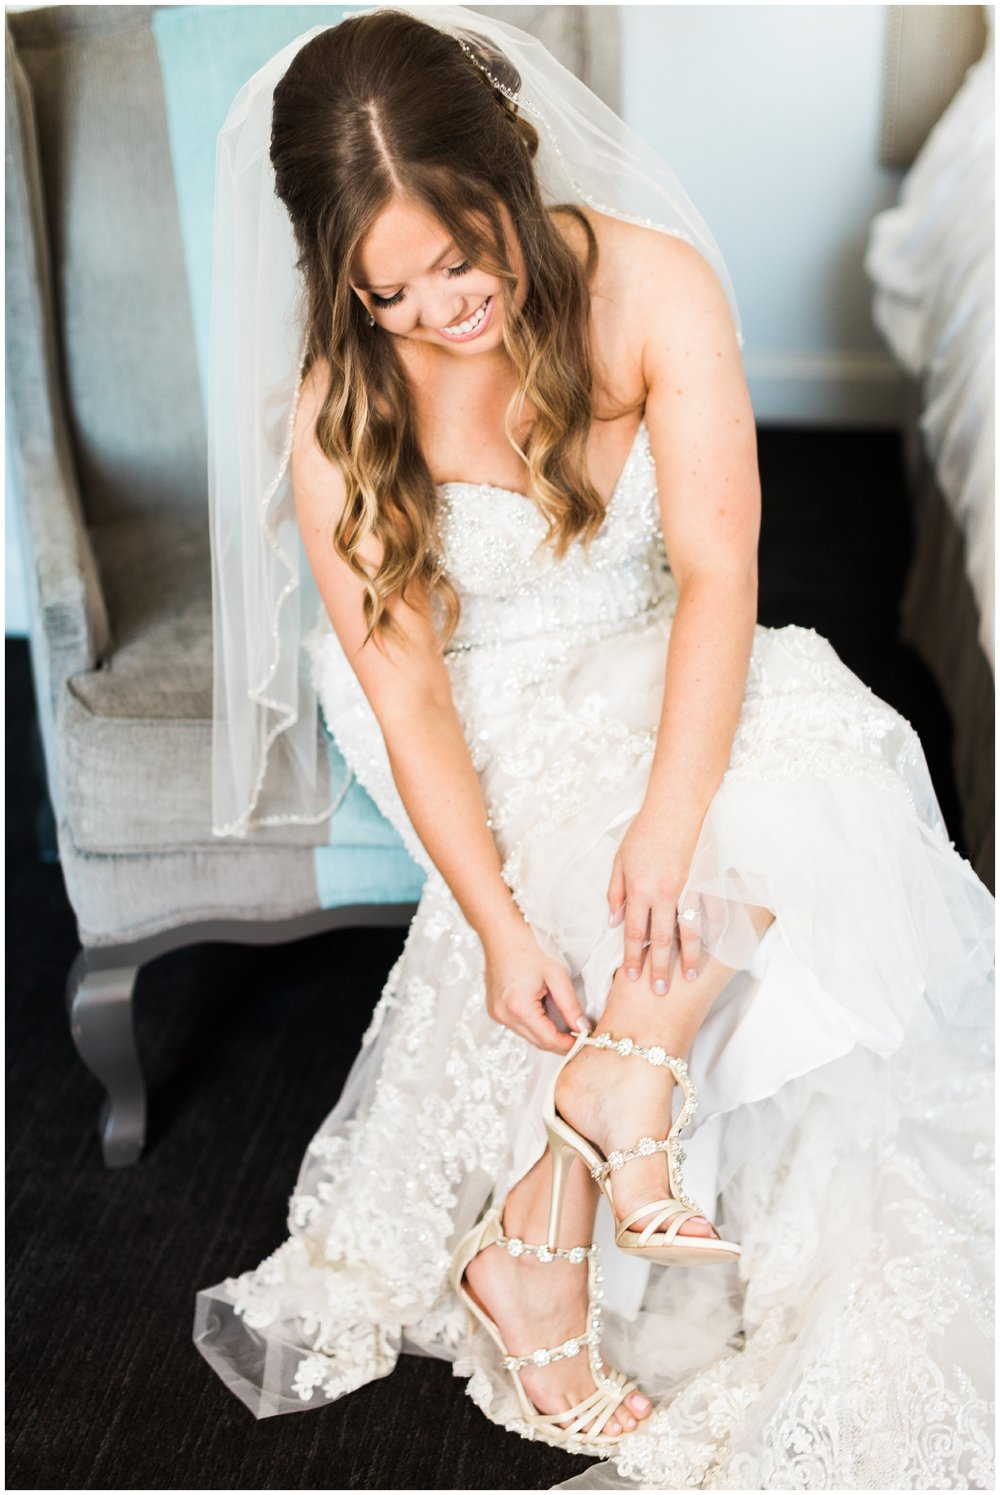 RebeccaHaleyPhotography_Denverweddingphotographer_Denverbride_coloradobride_chicagobride_chicagowedding_chicagoweddingphotographer_chicagowedding_chicagoplanetariumwedding_adlerplanetariumwedding__0009.jpg